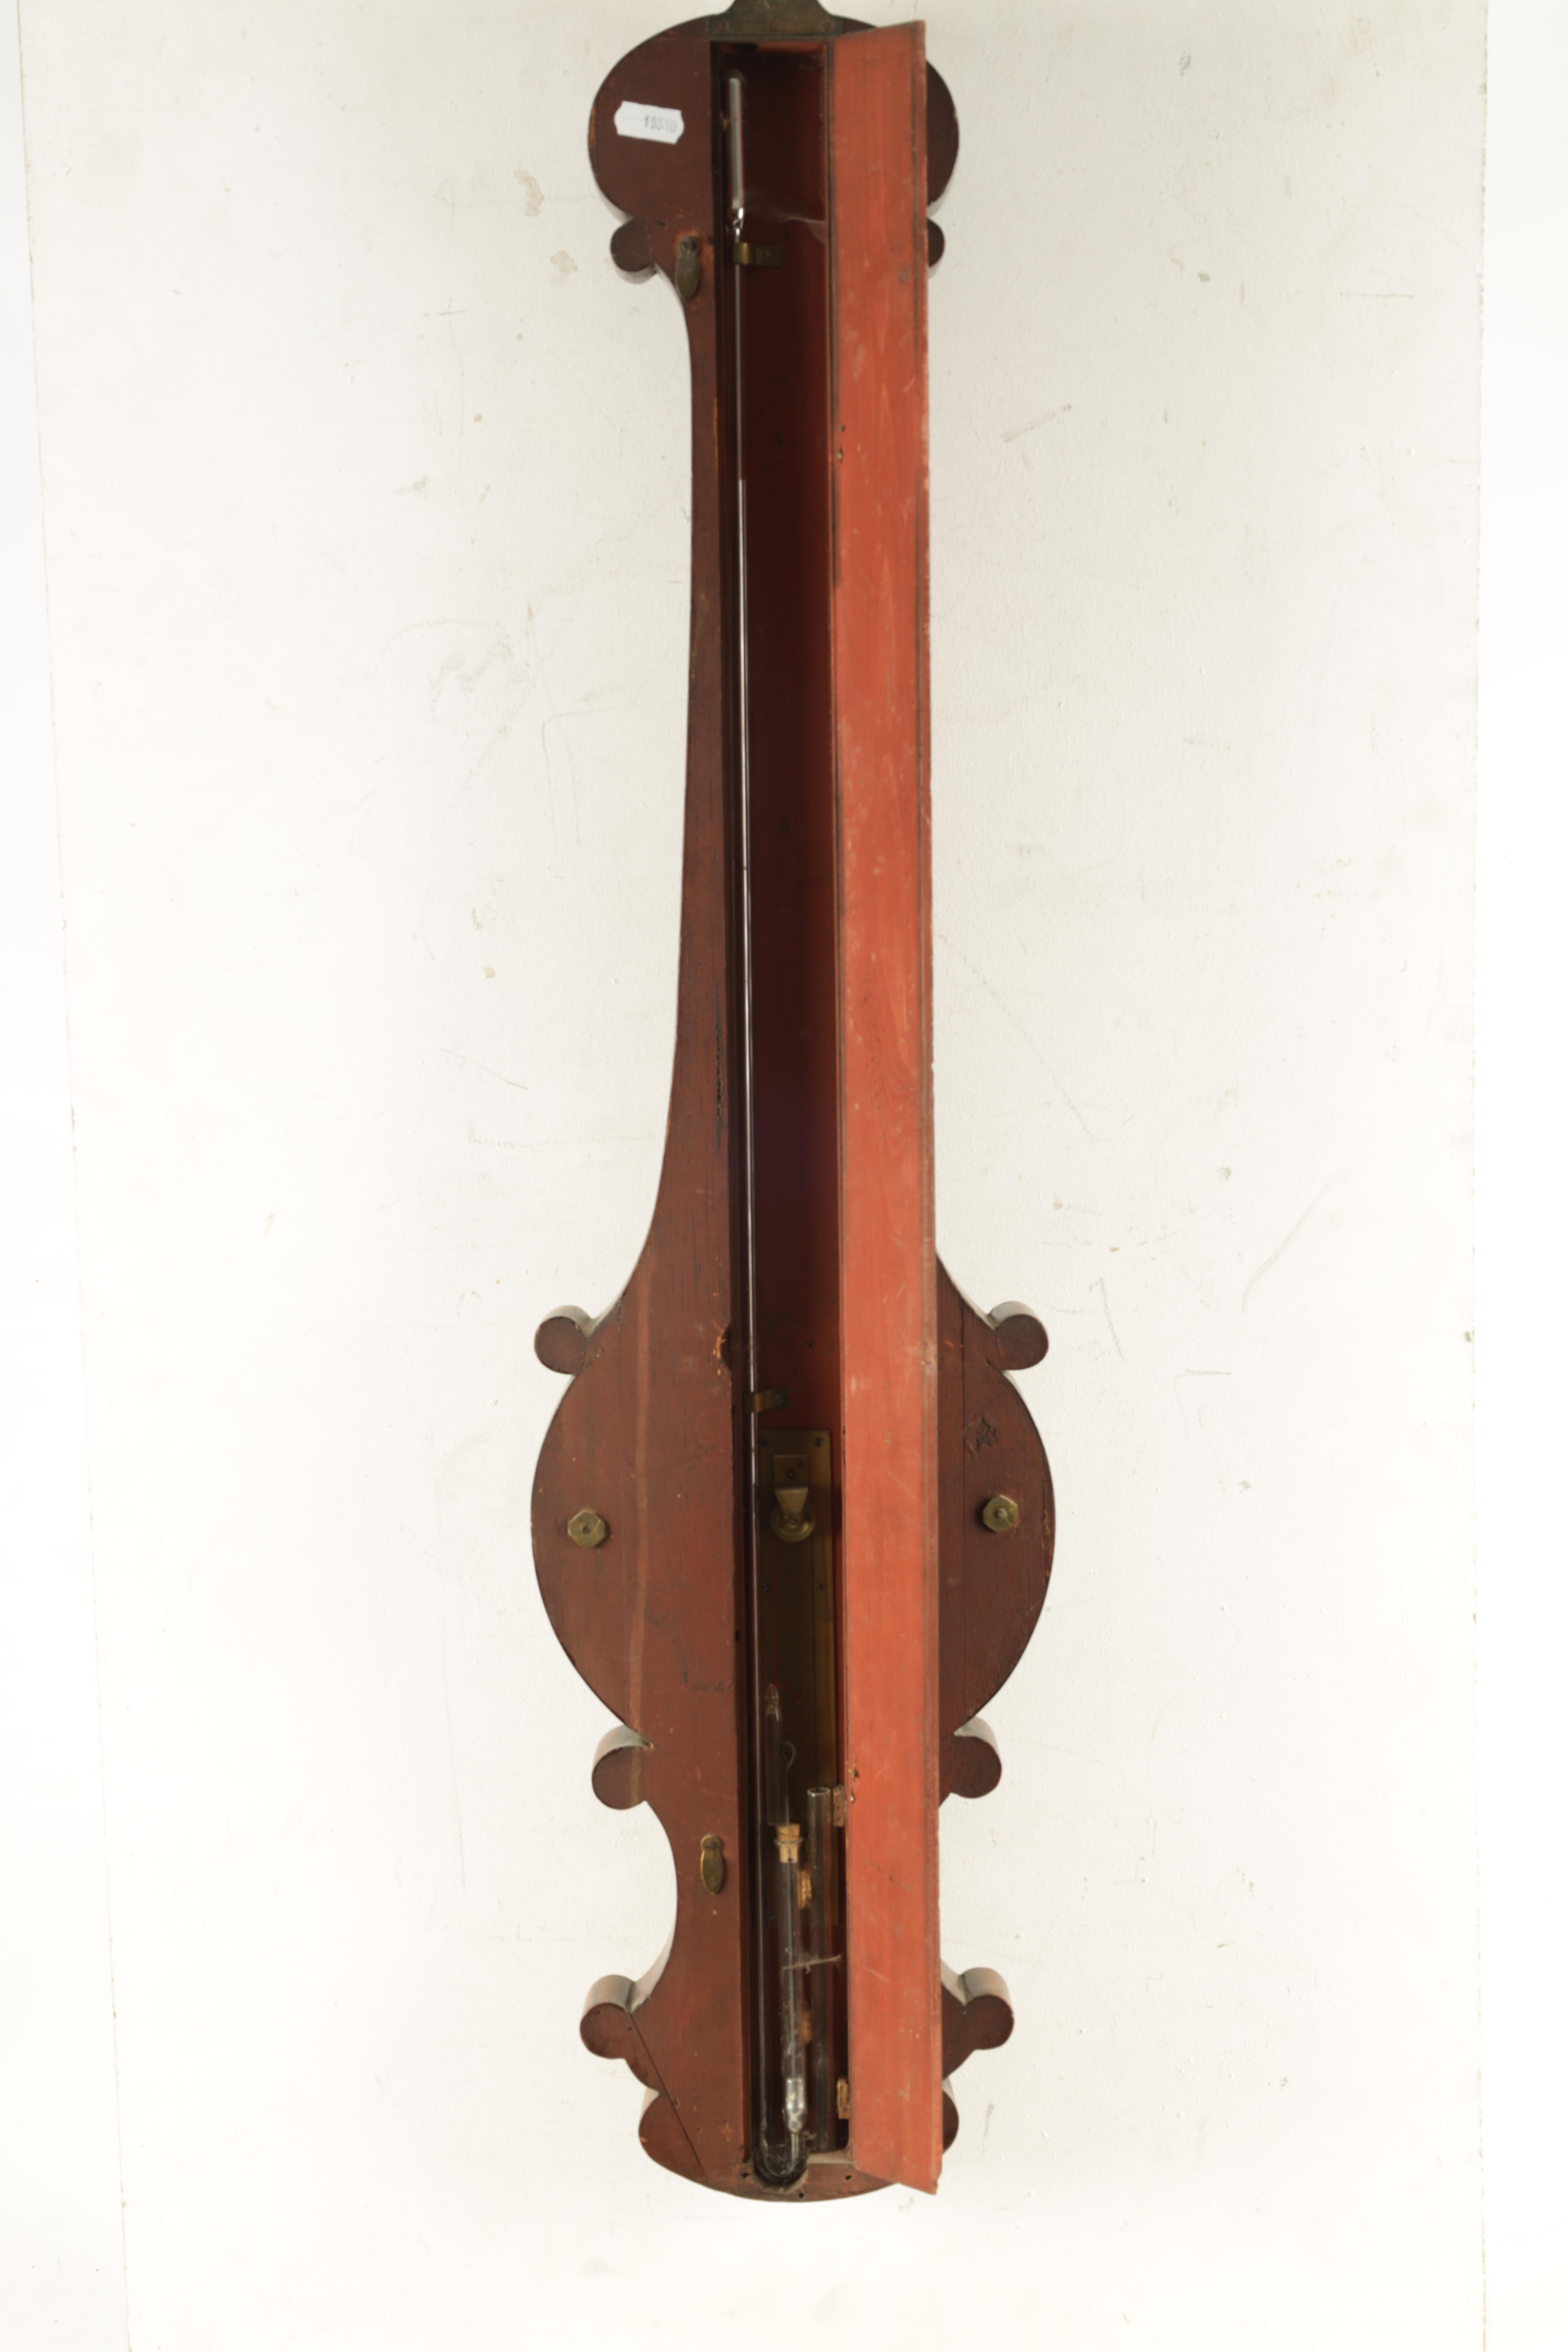 """ADIE AND SON. EDINBURGH A SMALL 19TH CENTURY 6"""" DIAL FIGURED MAHOGANY WHEEL BAROMETER the case - Image 4 of 4"""